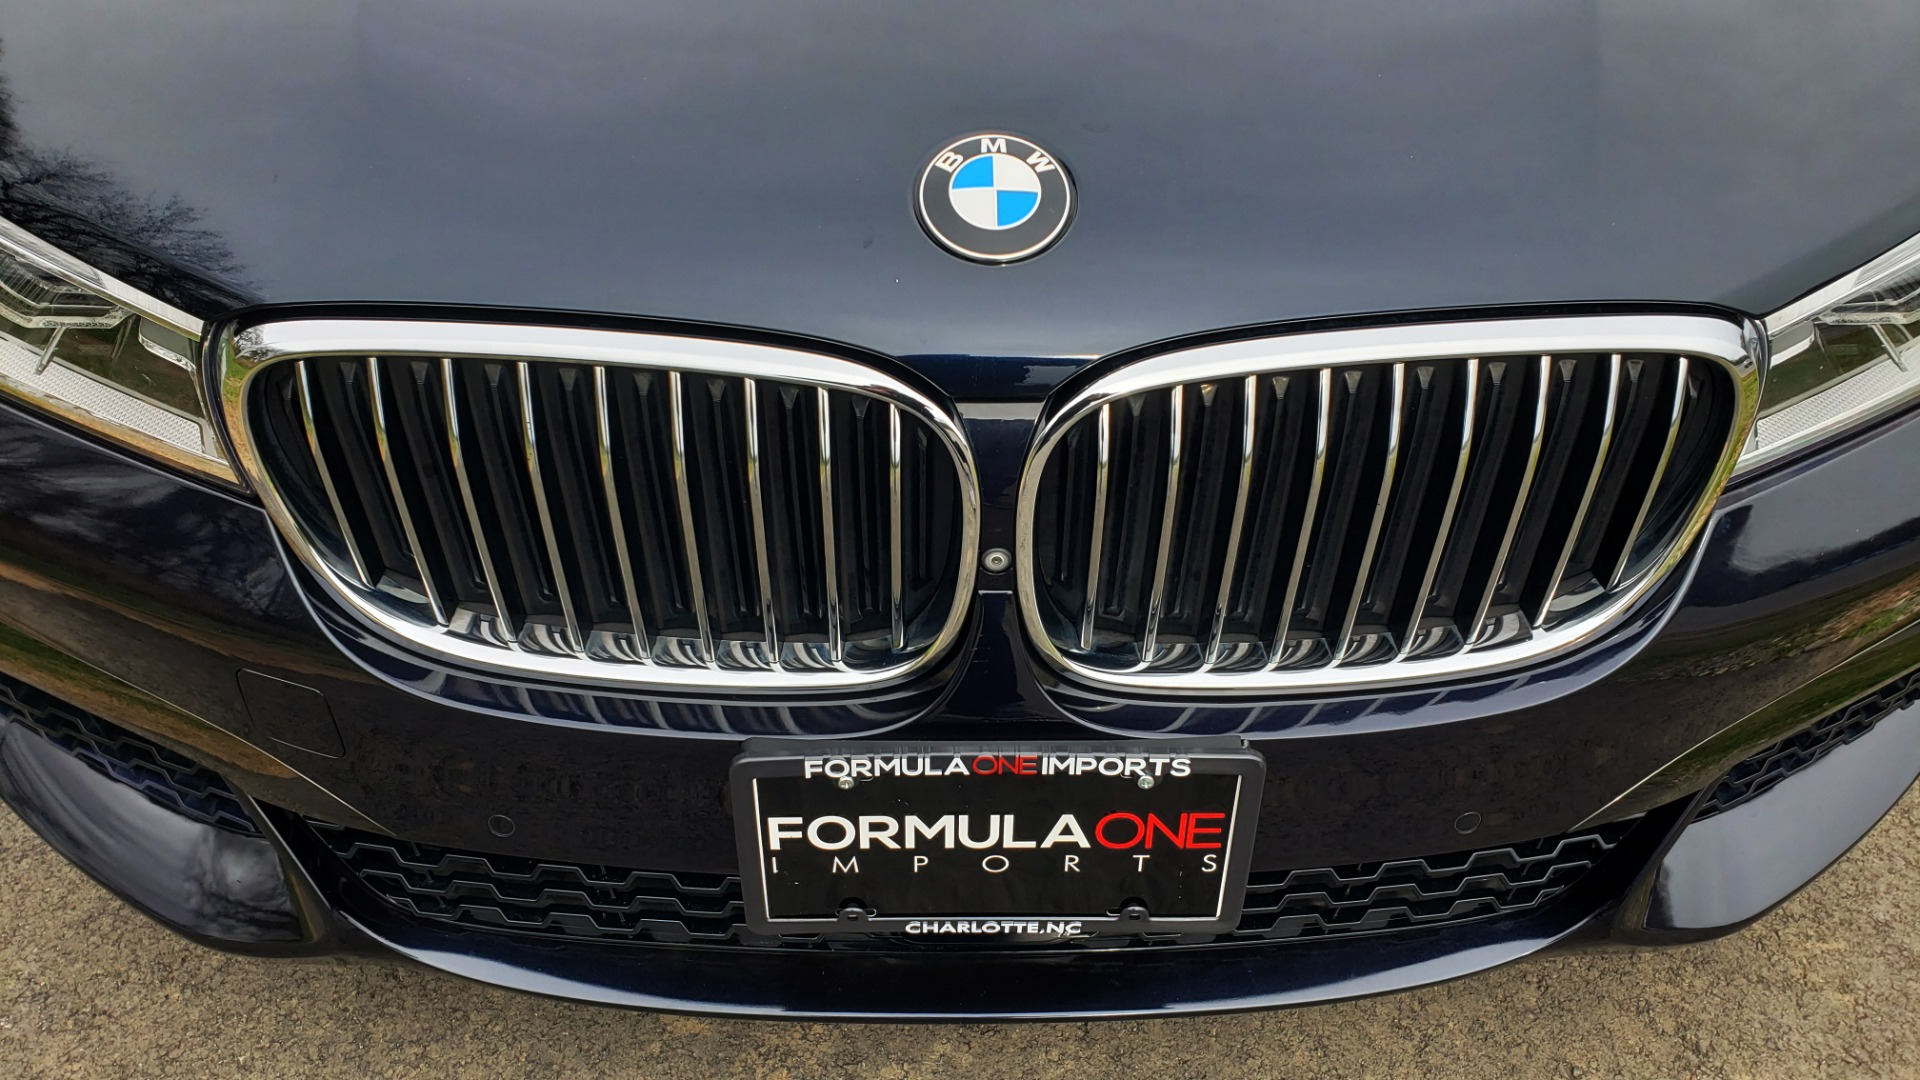 Used 2017 BMW 7 SERIES 750I XDRIVE / M-SPORT / DRVR ASST / EXEC PKG / CLD WTHR for sale Sold at Formula Imports in Charlotte NC 28227 12